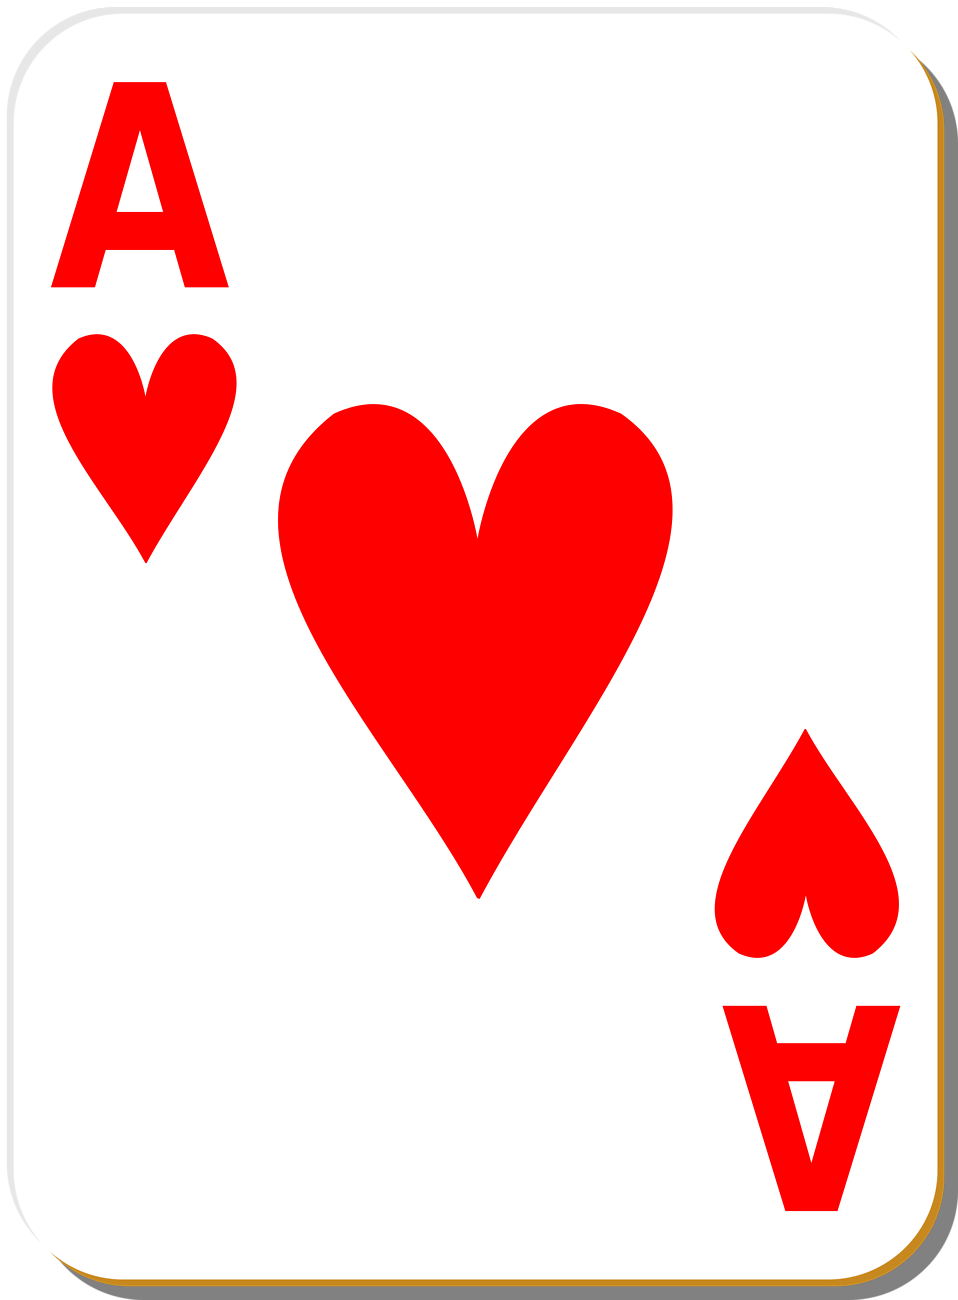 ace heart playing card clip art budget cuts pinterest playing rh pinterest com playing cards clip art images playing cards clip art vector free download